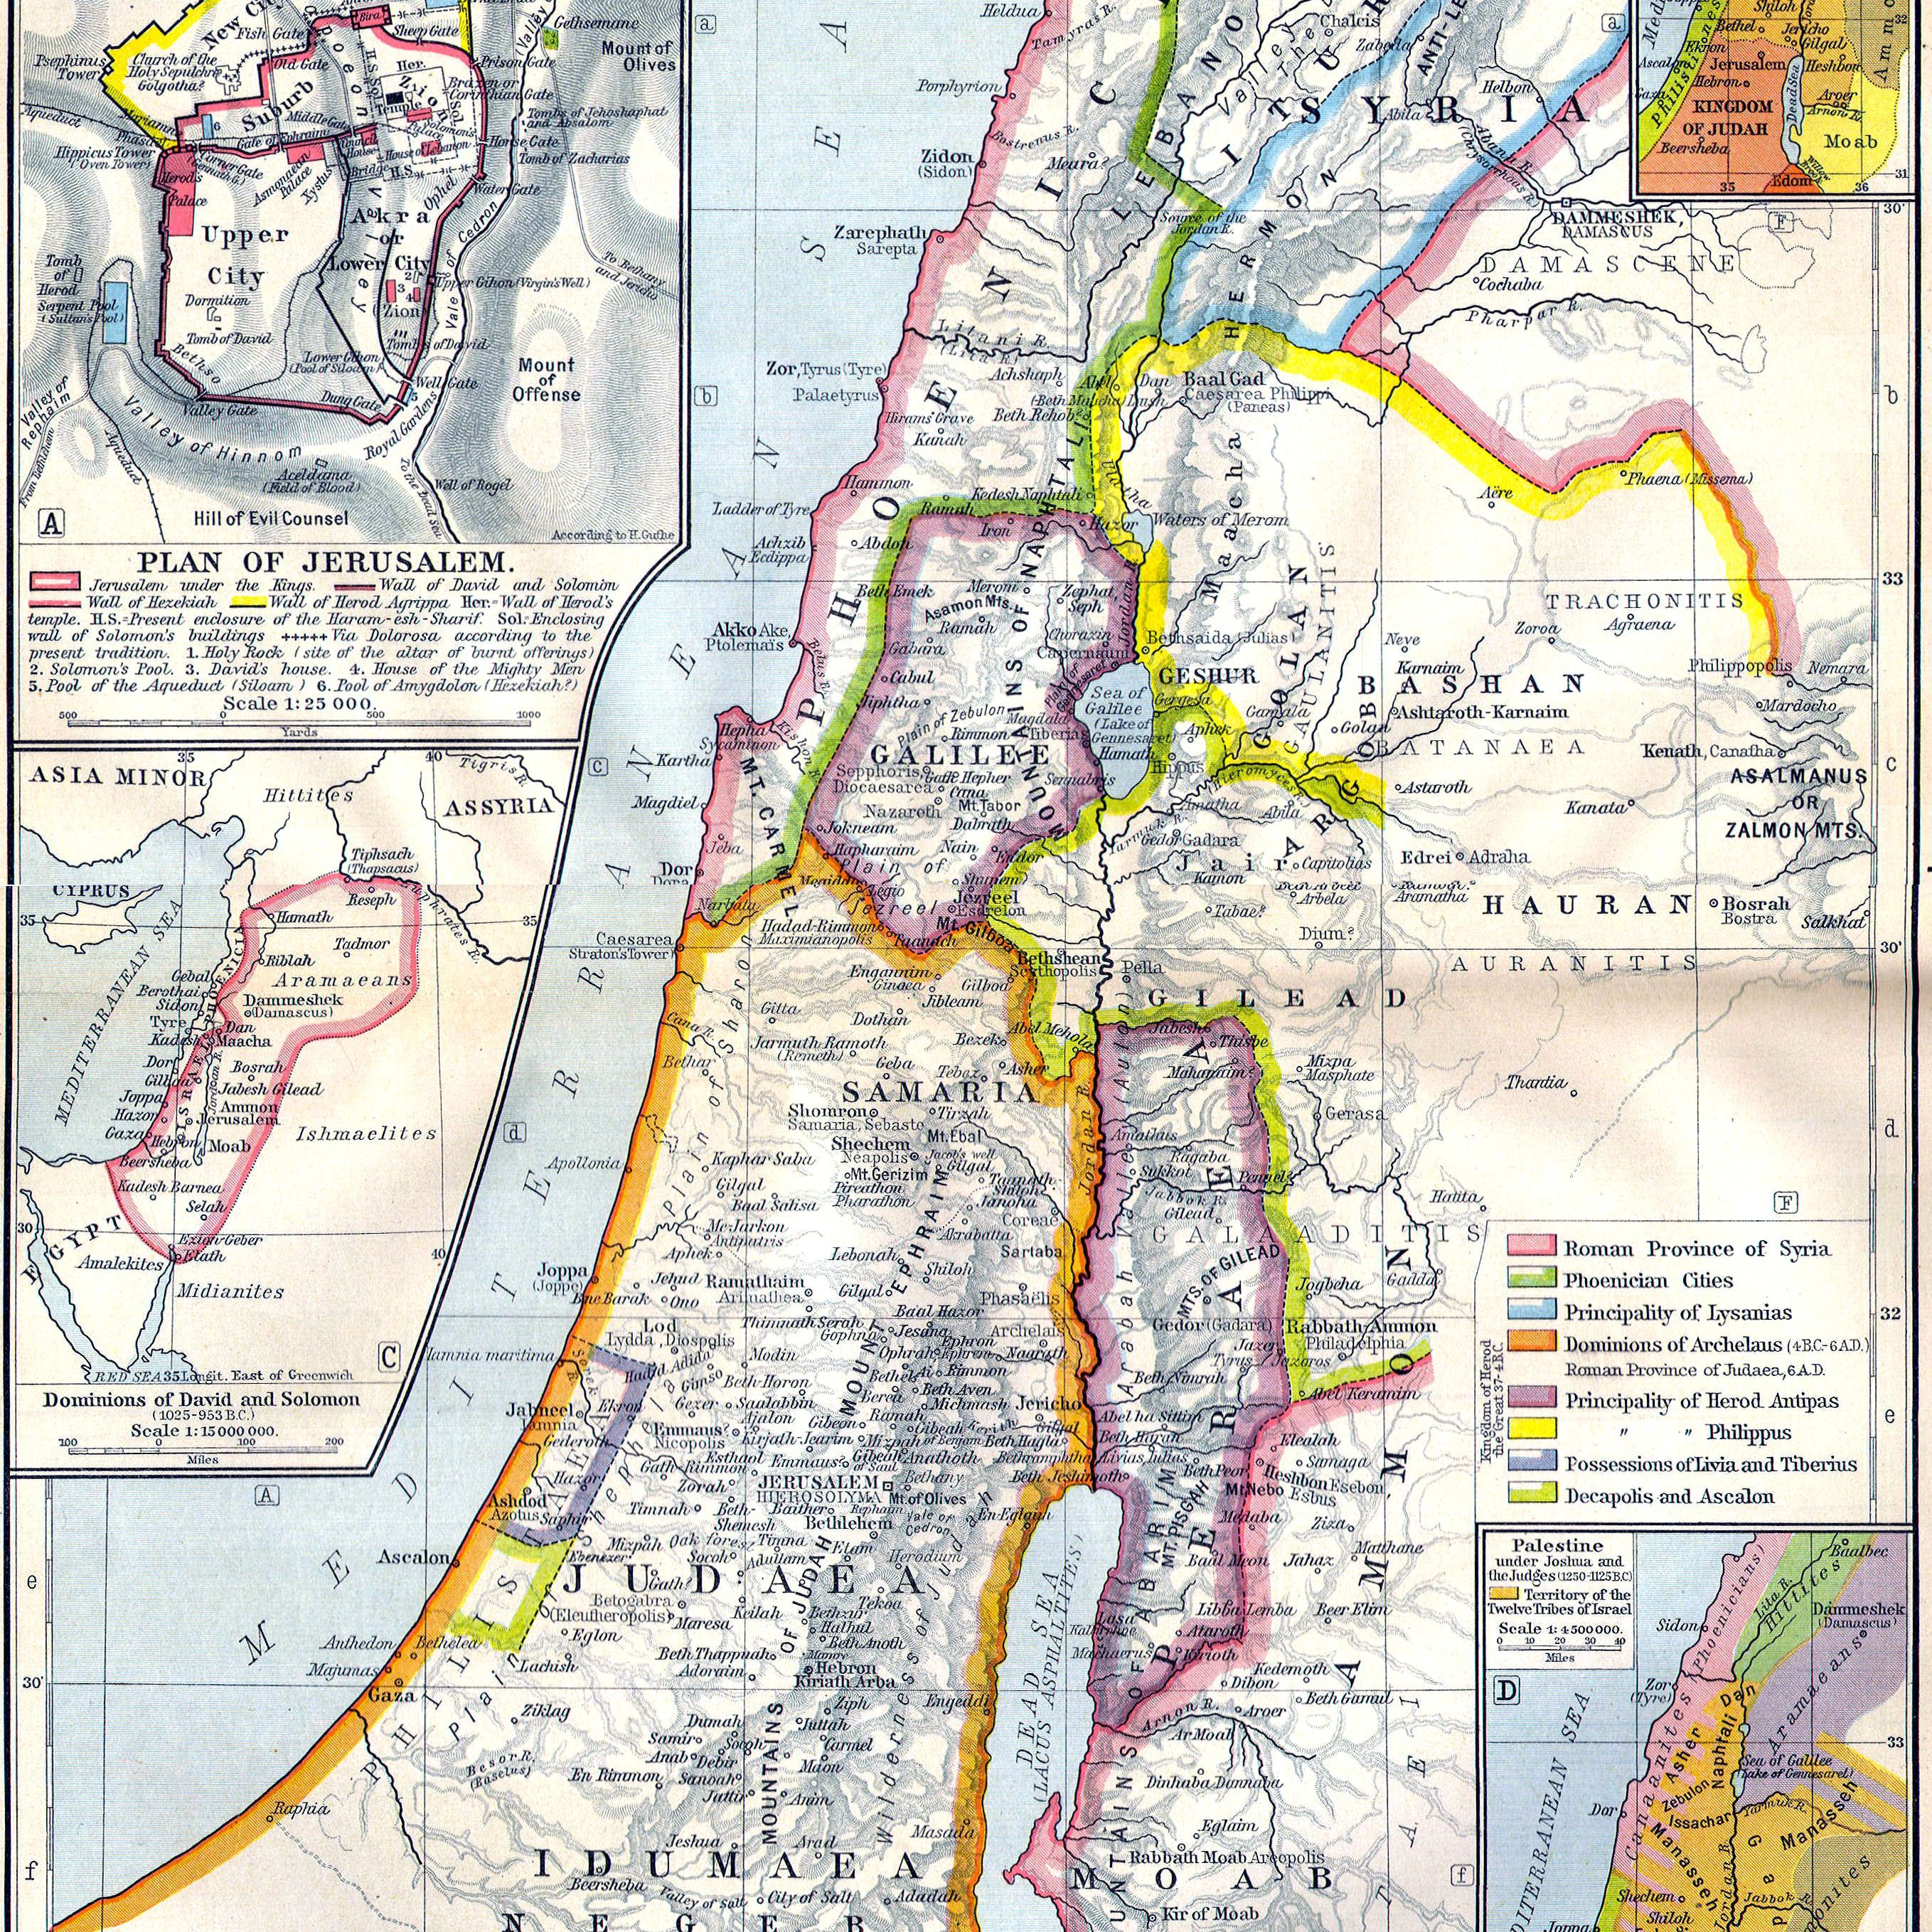 The Main Eras of Ancient Jewish History Printable Map Of Biblical Israel on aerial view of biblical israel, 10 years in israel, biblical lands of israel, printable outline map of israel, elevation of jerusalem israel, geography of biblical israel, original boundaries of israel, printable map of modern israel, old testament maps of israel, printable map of israel today, topological map israel,